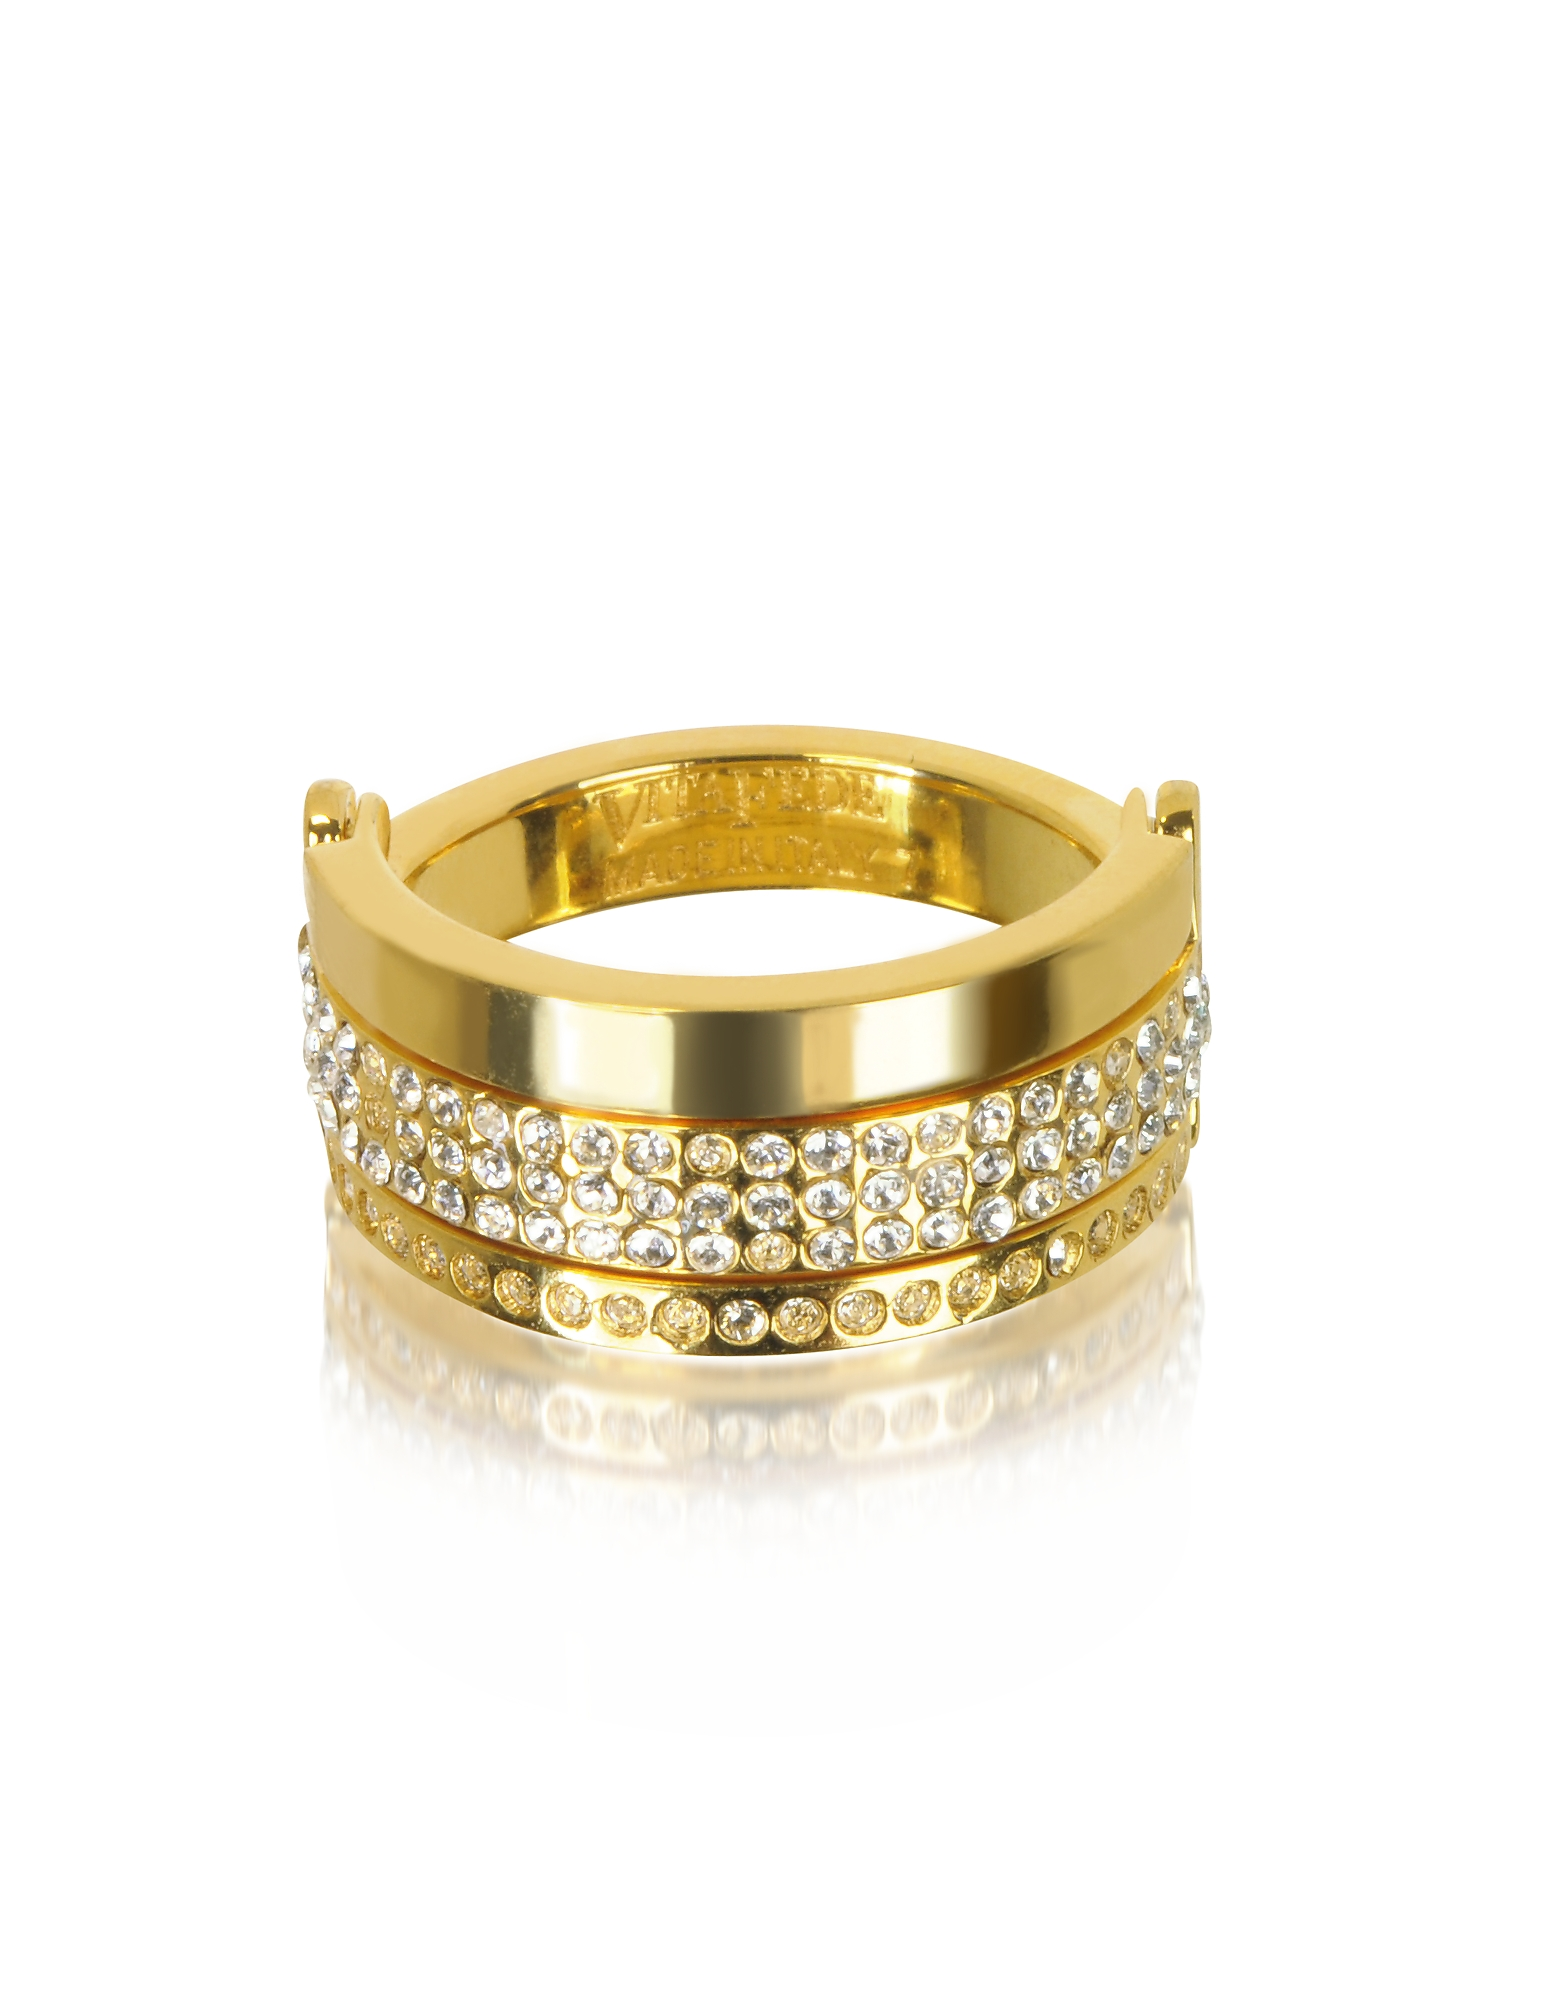 Vita Fede Rings, Bardot Gold Tone Ring w/Crystals